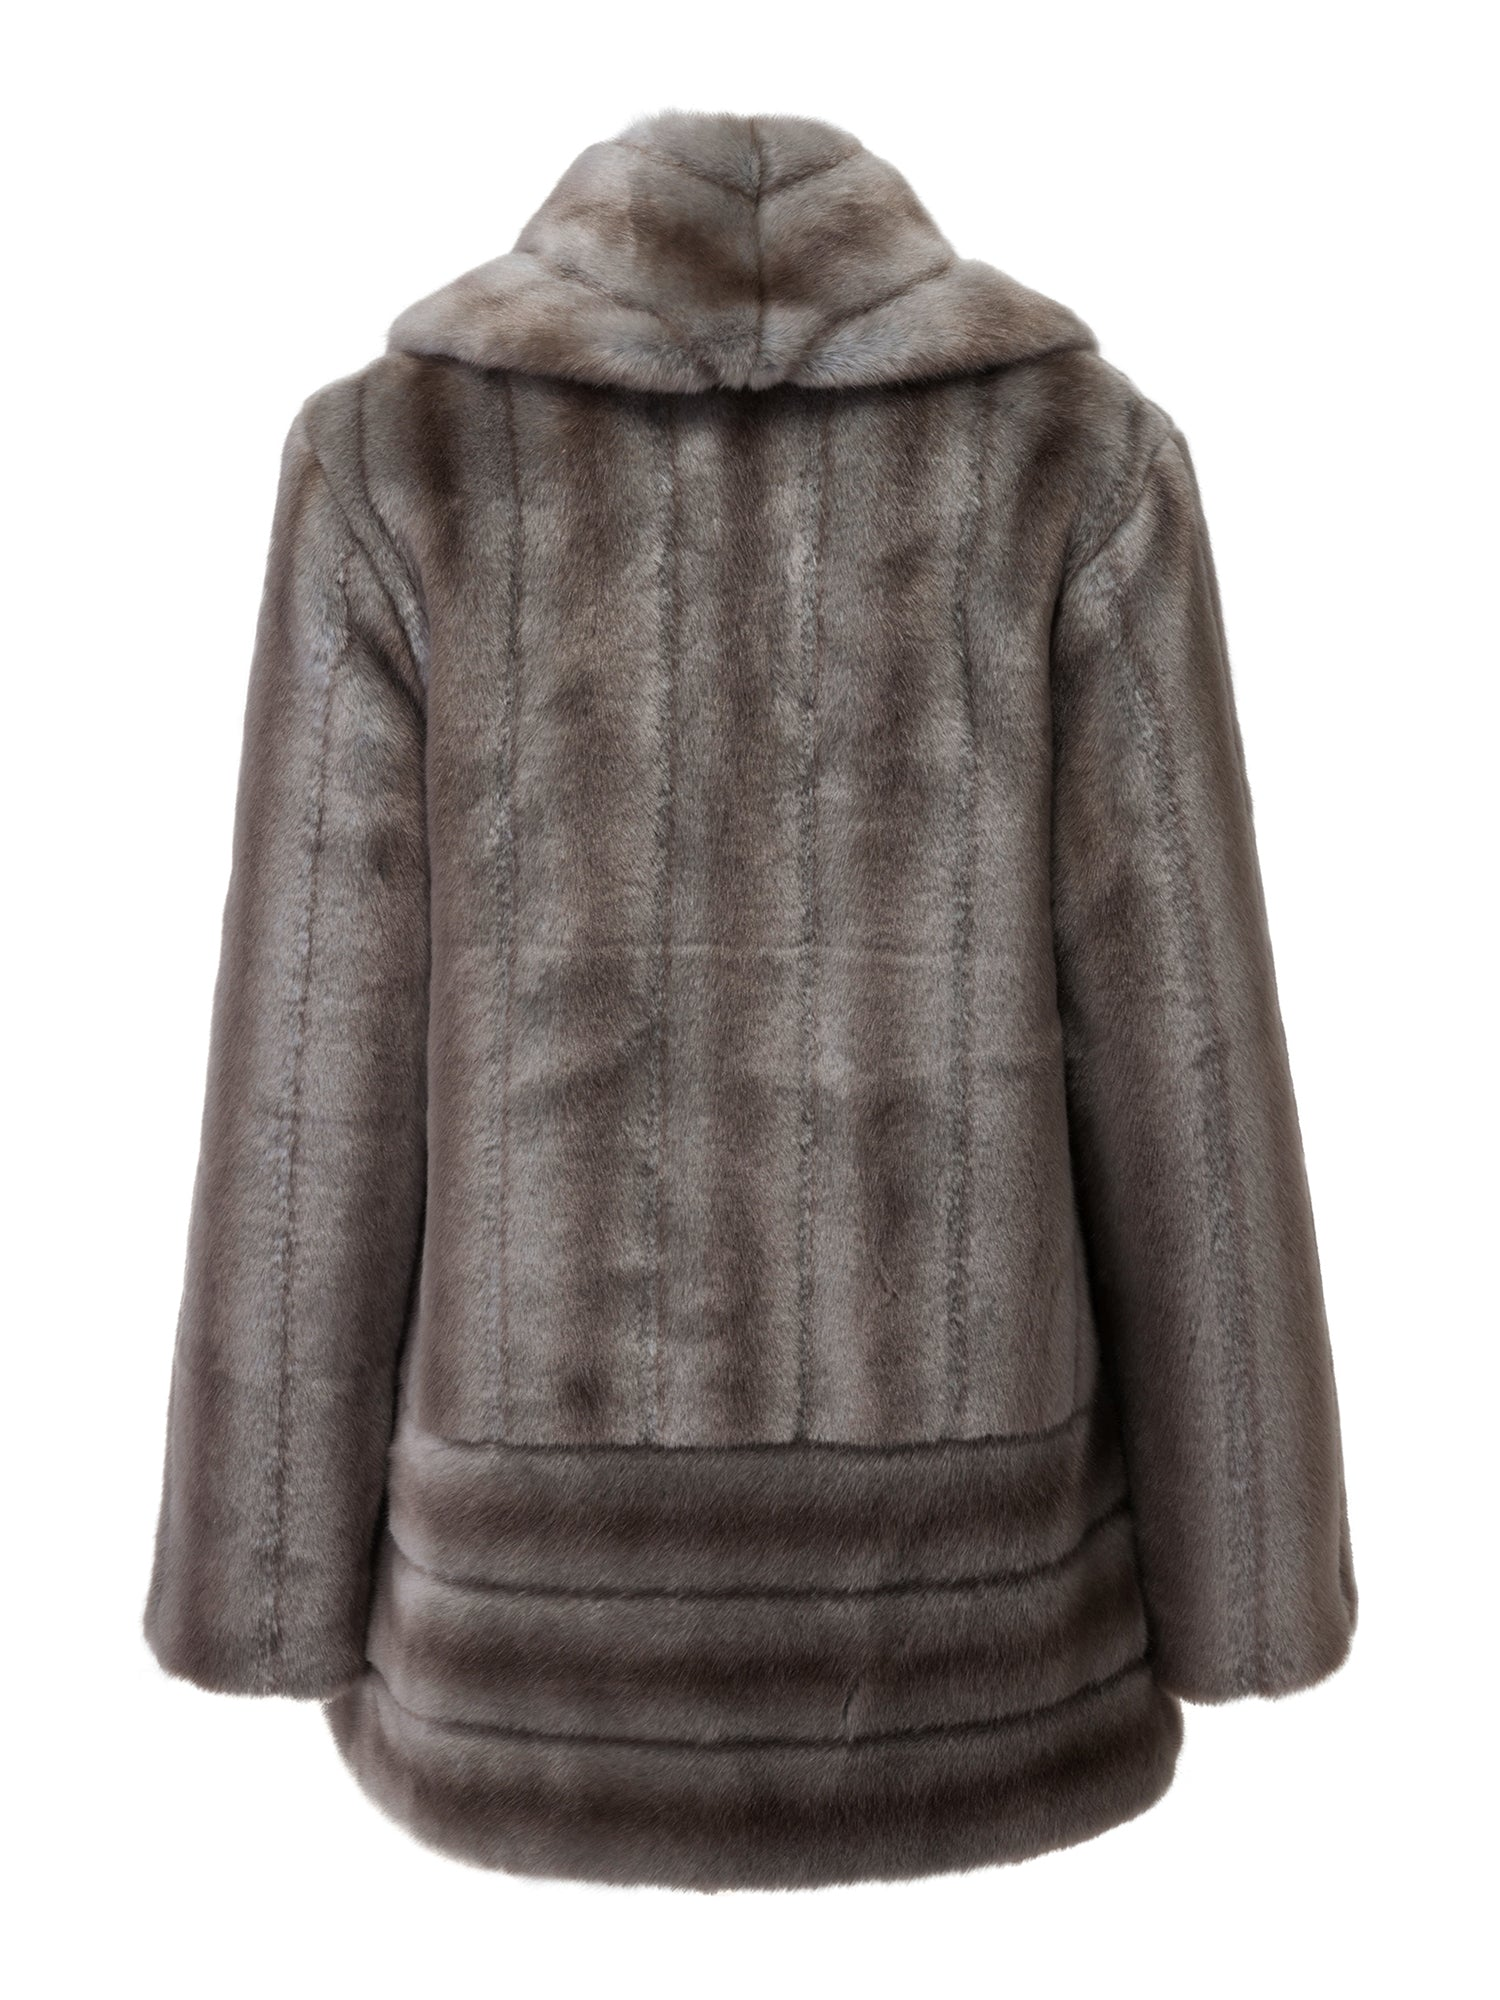 A Packshot Of Marei1998's Labiatae Faux Fur Coat In Classic Grey Color. Made From Plush Faux Fur, Which Feels So Warm And Comfortable. Cut In A Slight A-Line Shape And Fully Lined, It Is Ideal For Smooth Layering. Timeless Winter Investment. Back View.